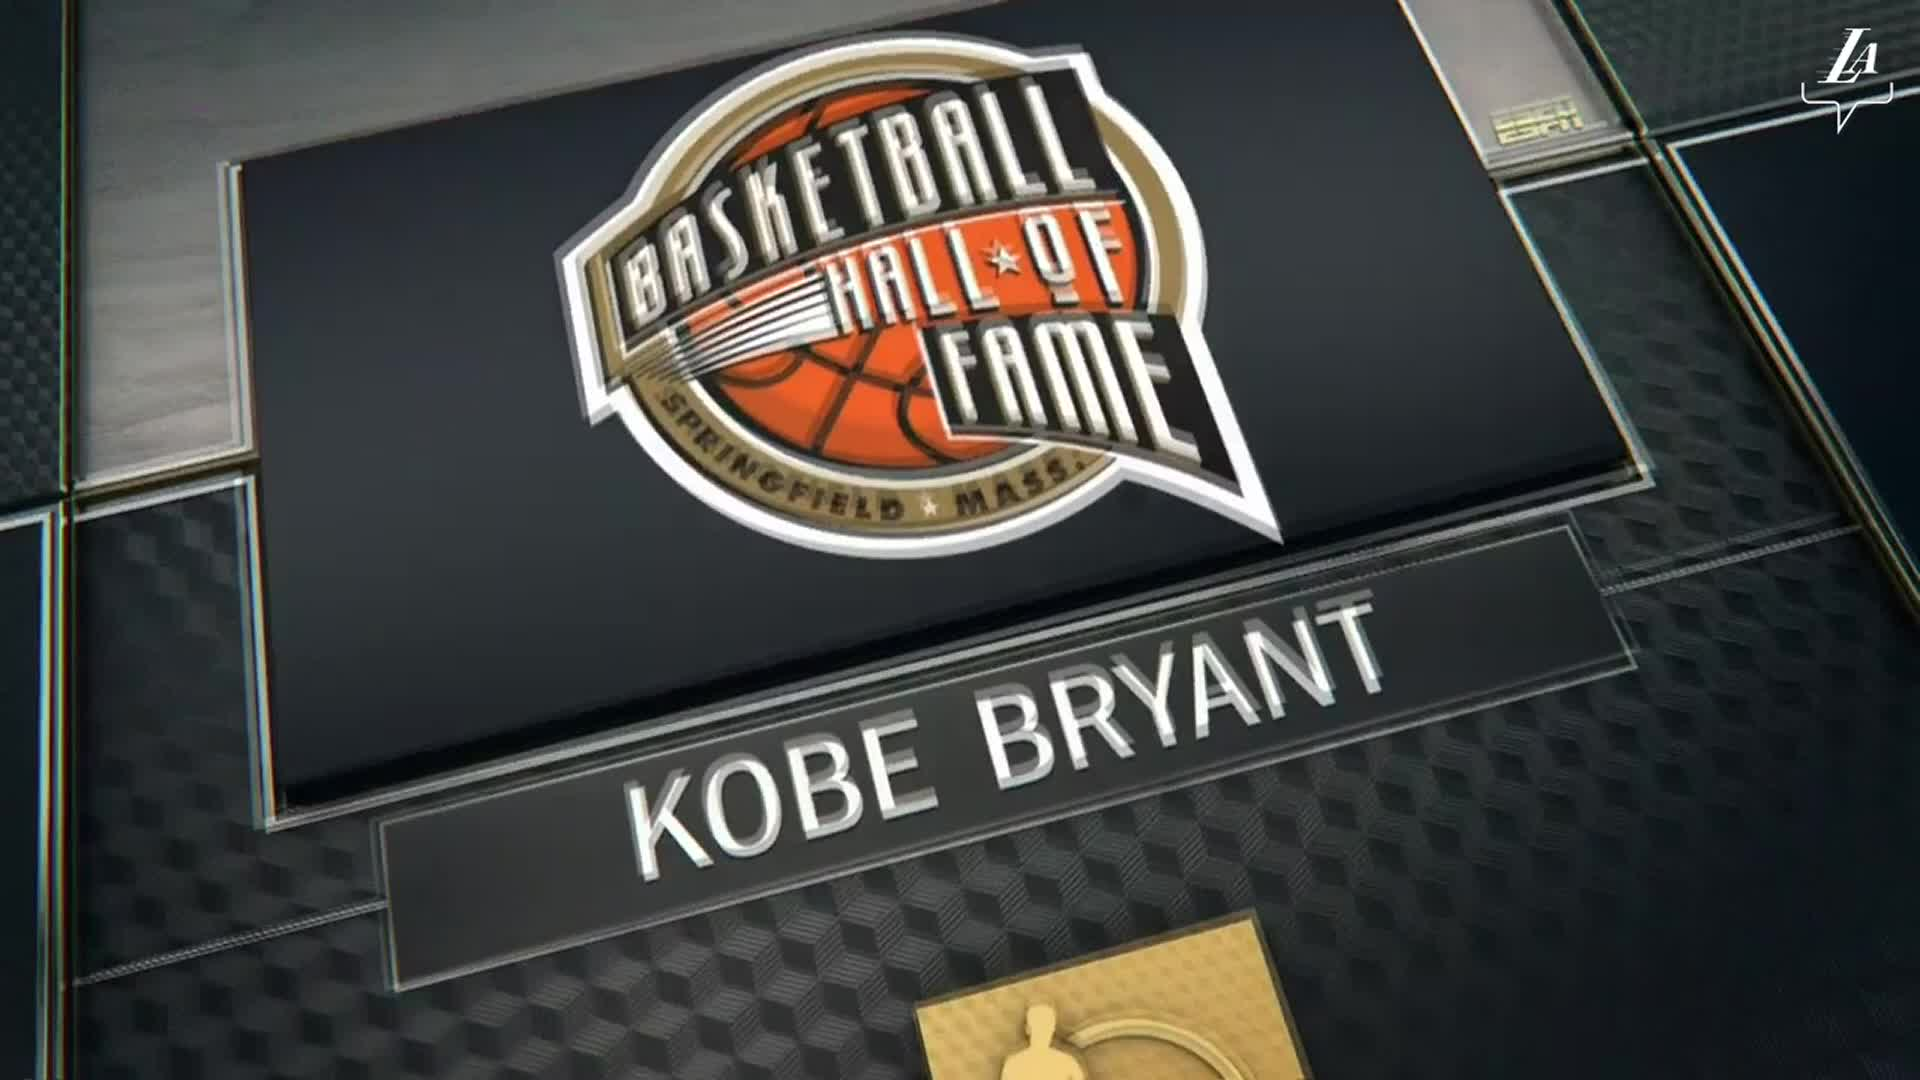 The story of Kobe Bryant, as told by his fellow Hall of Famers.